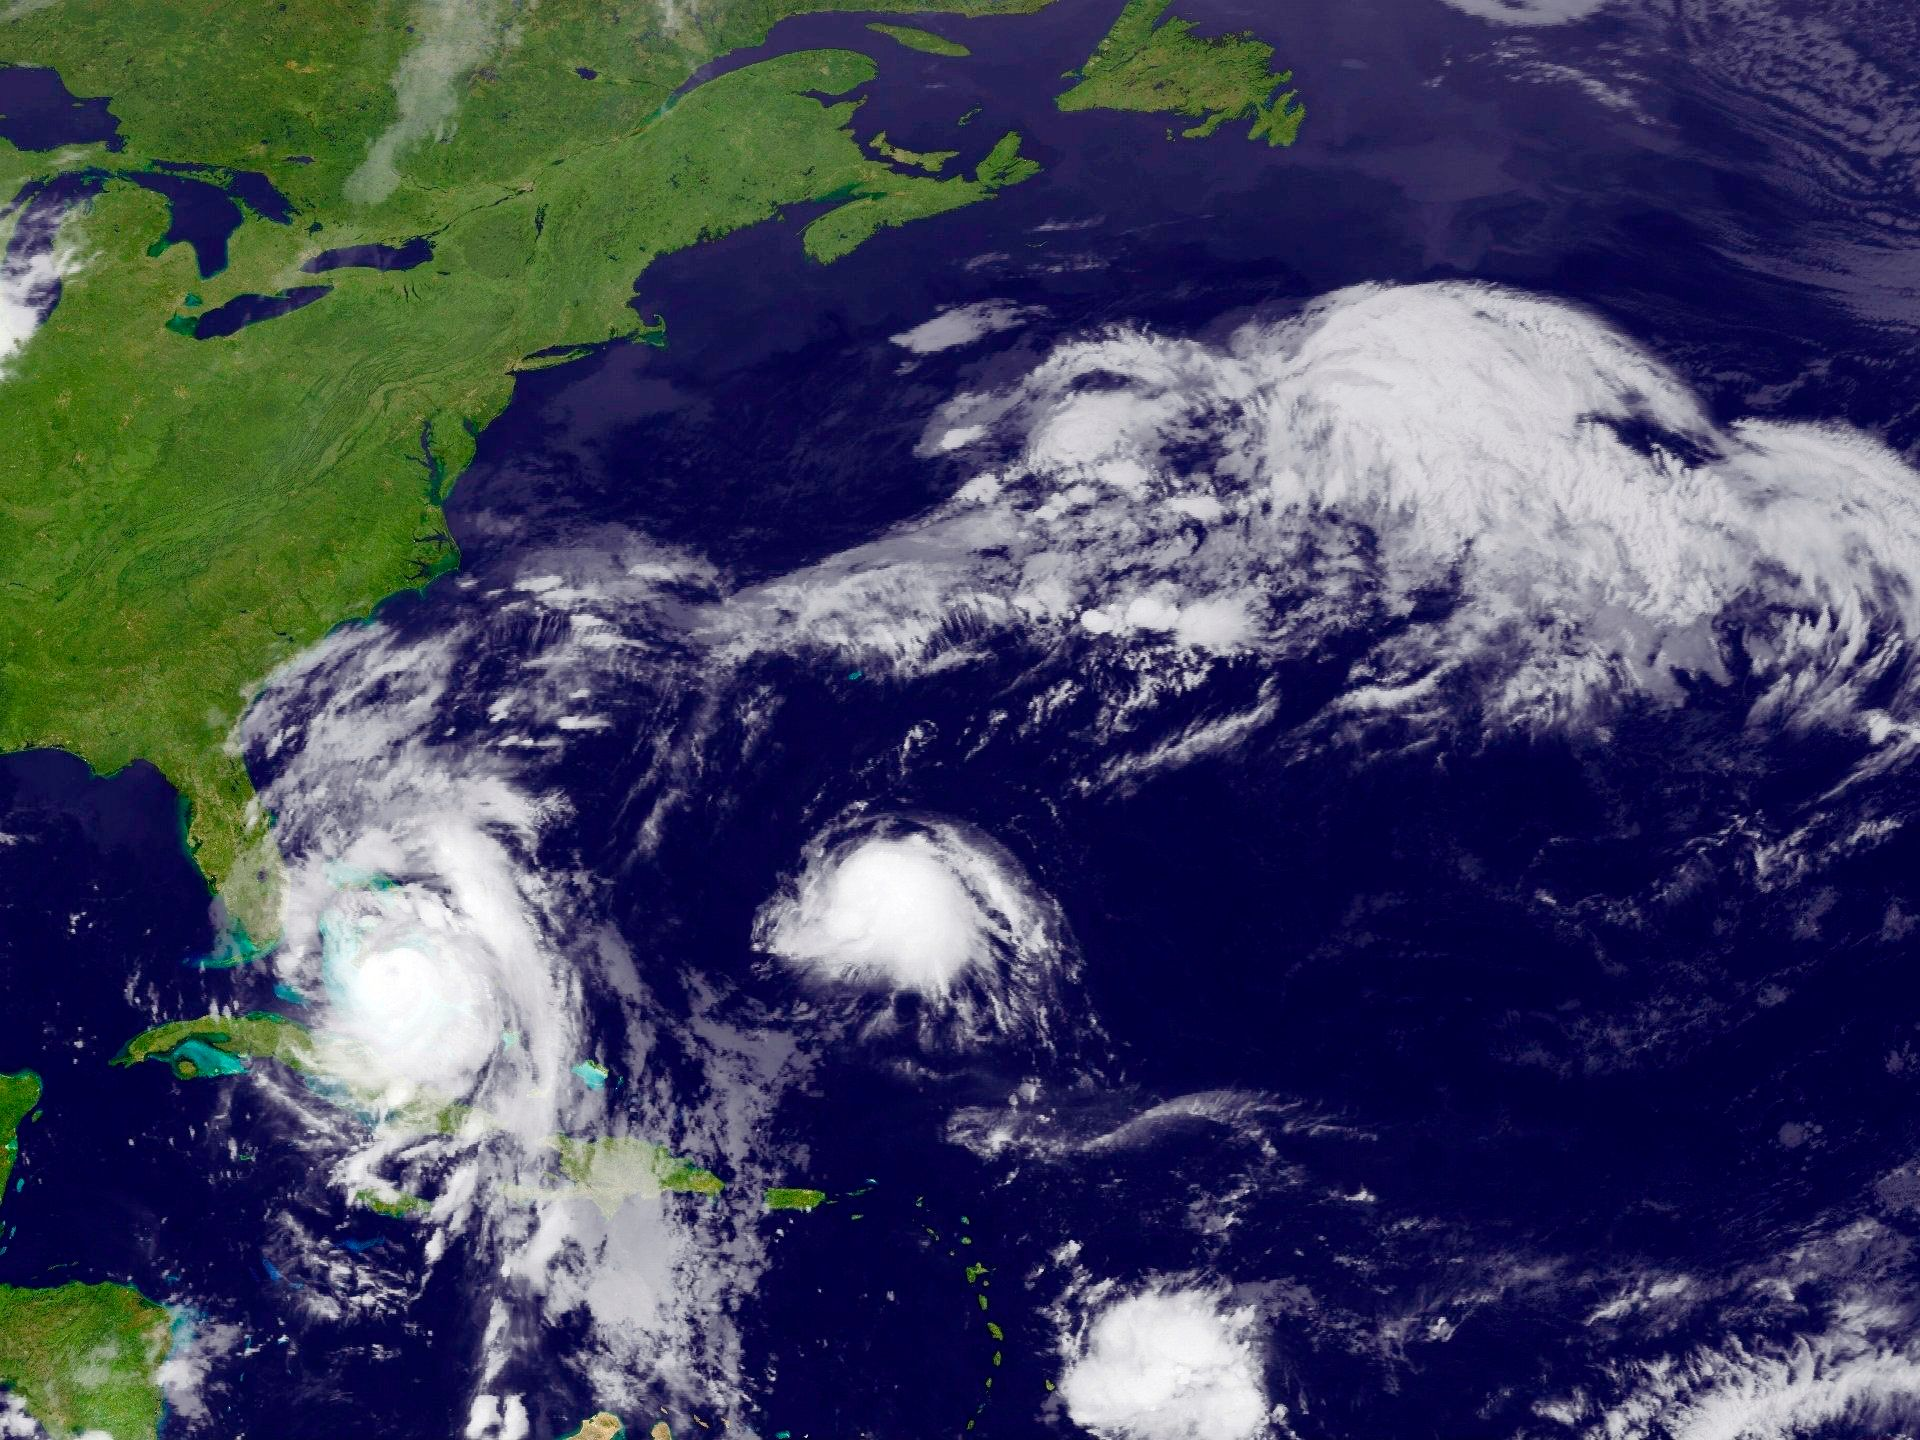 Hurricane Matthew is seen approaching the East Coast of the United States in this image from NOAA's GOES-East satellite taken October 6, 2016.